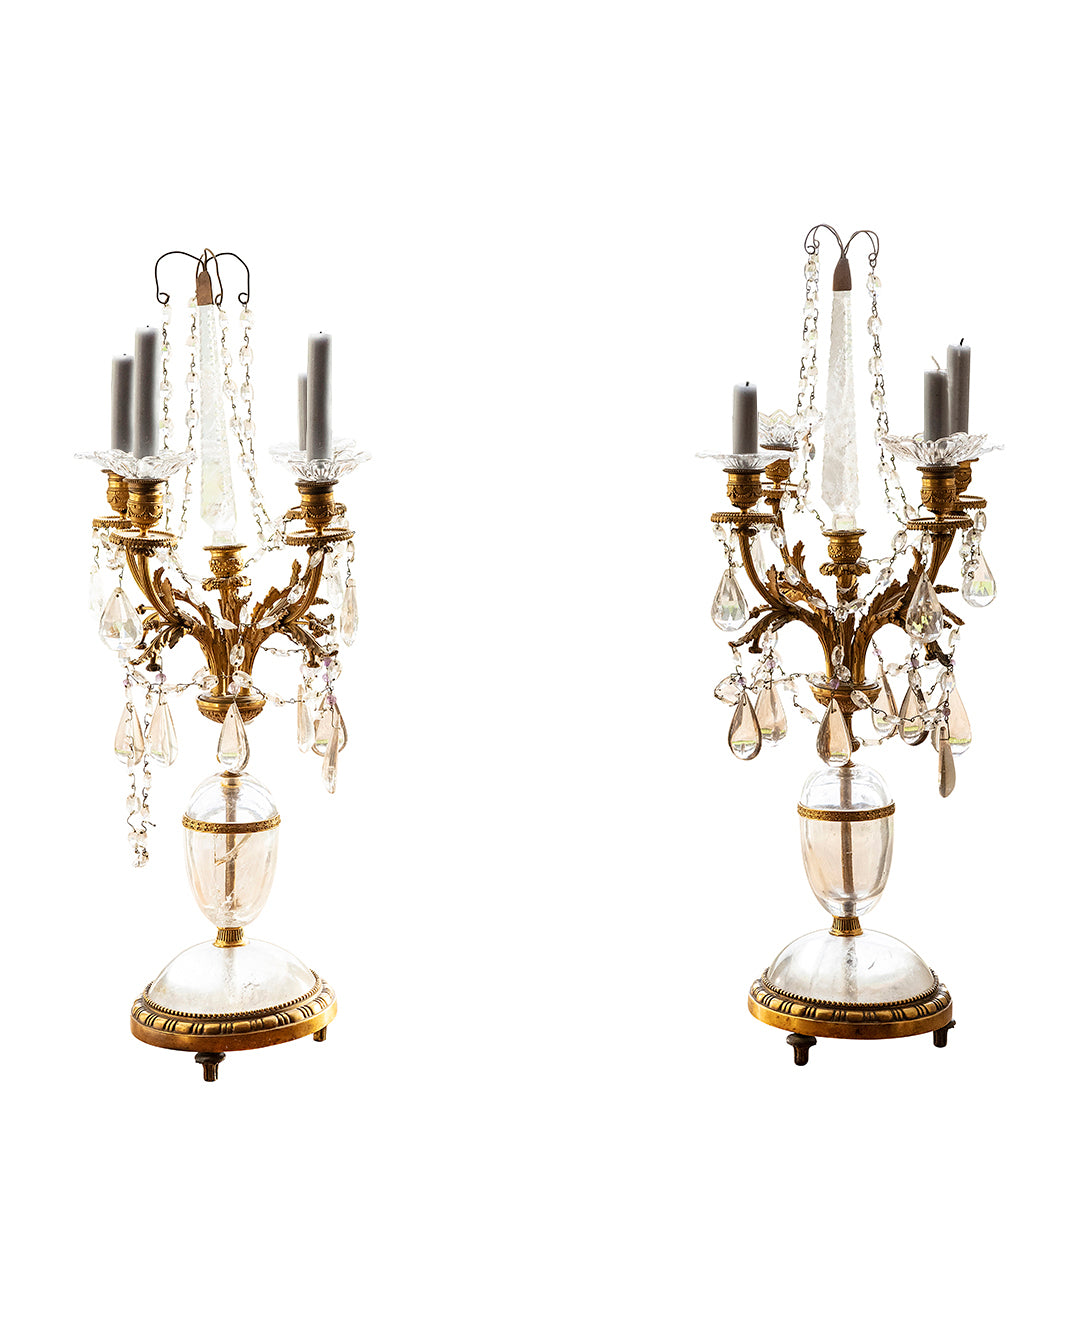 Pair of candelabra with rock crystals